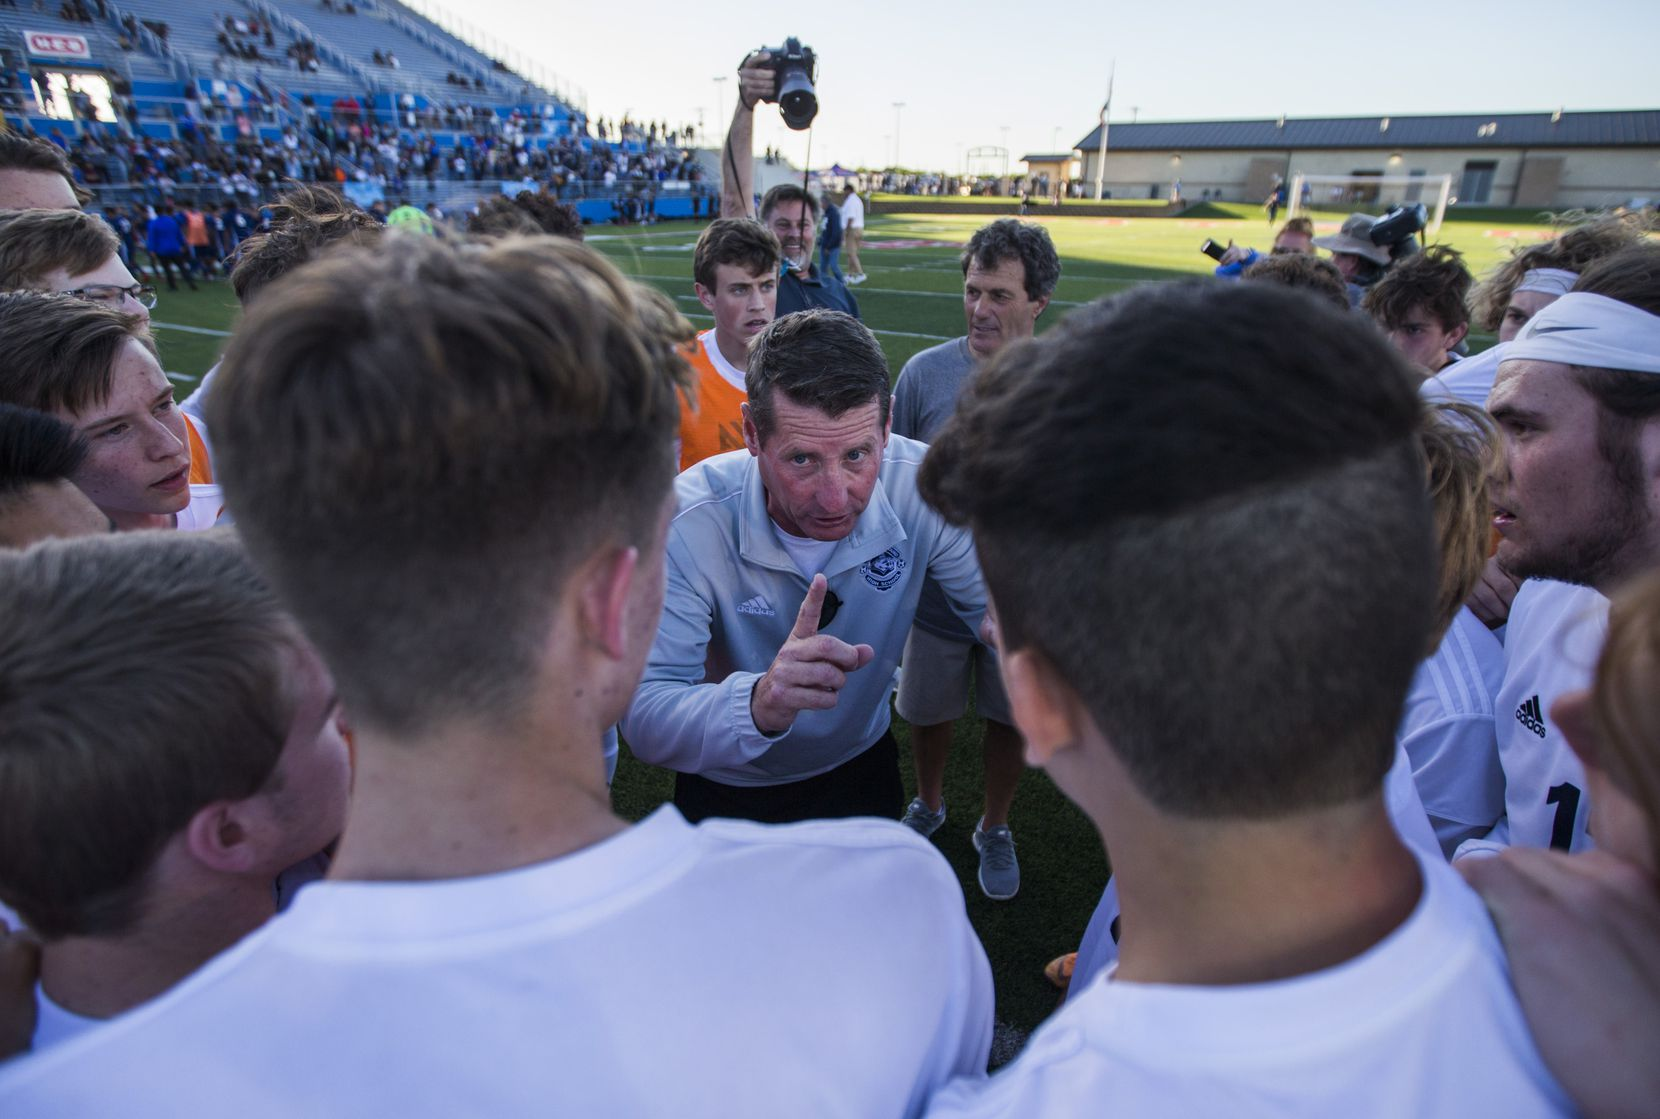 Flower Mound head coach David Doyle talks to his team after a 3-2 win in a UIL conference 6A boys state semifinal soccer game between Flower Mound High School and Alief Elsik High School on Friday, April 19, 2019 at Birkelbach Field in Georgetown, Texas. Flower Mound will advance to the state final on Saturday. (Ashley Landis/The Dallas Morning News)